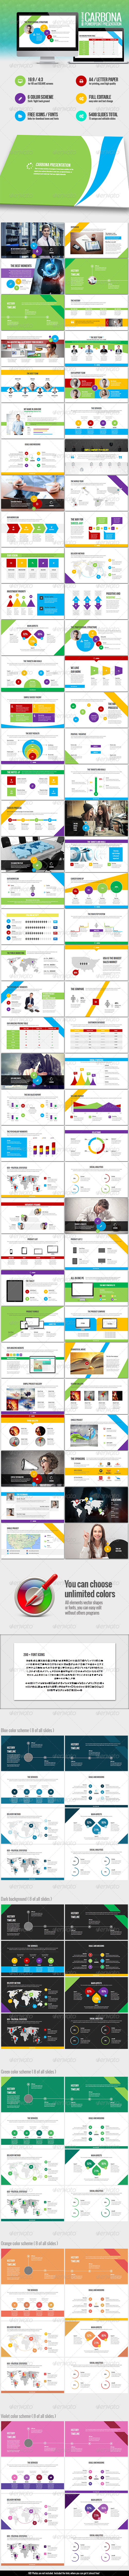 GraphicRiver Carbona professional business presentation 8330895